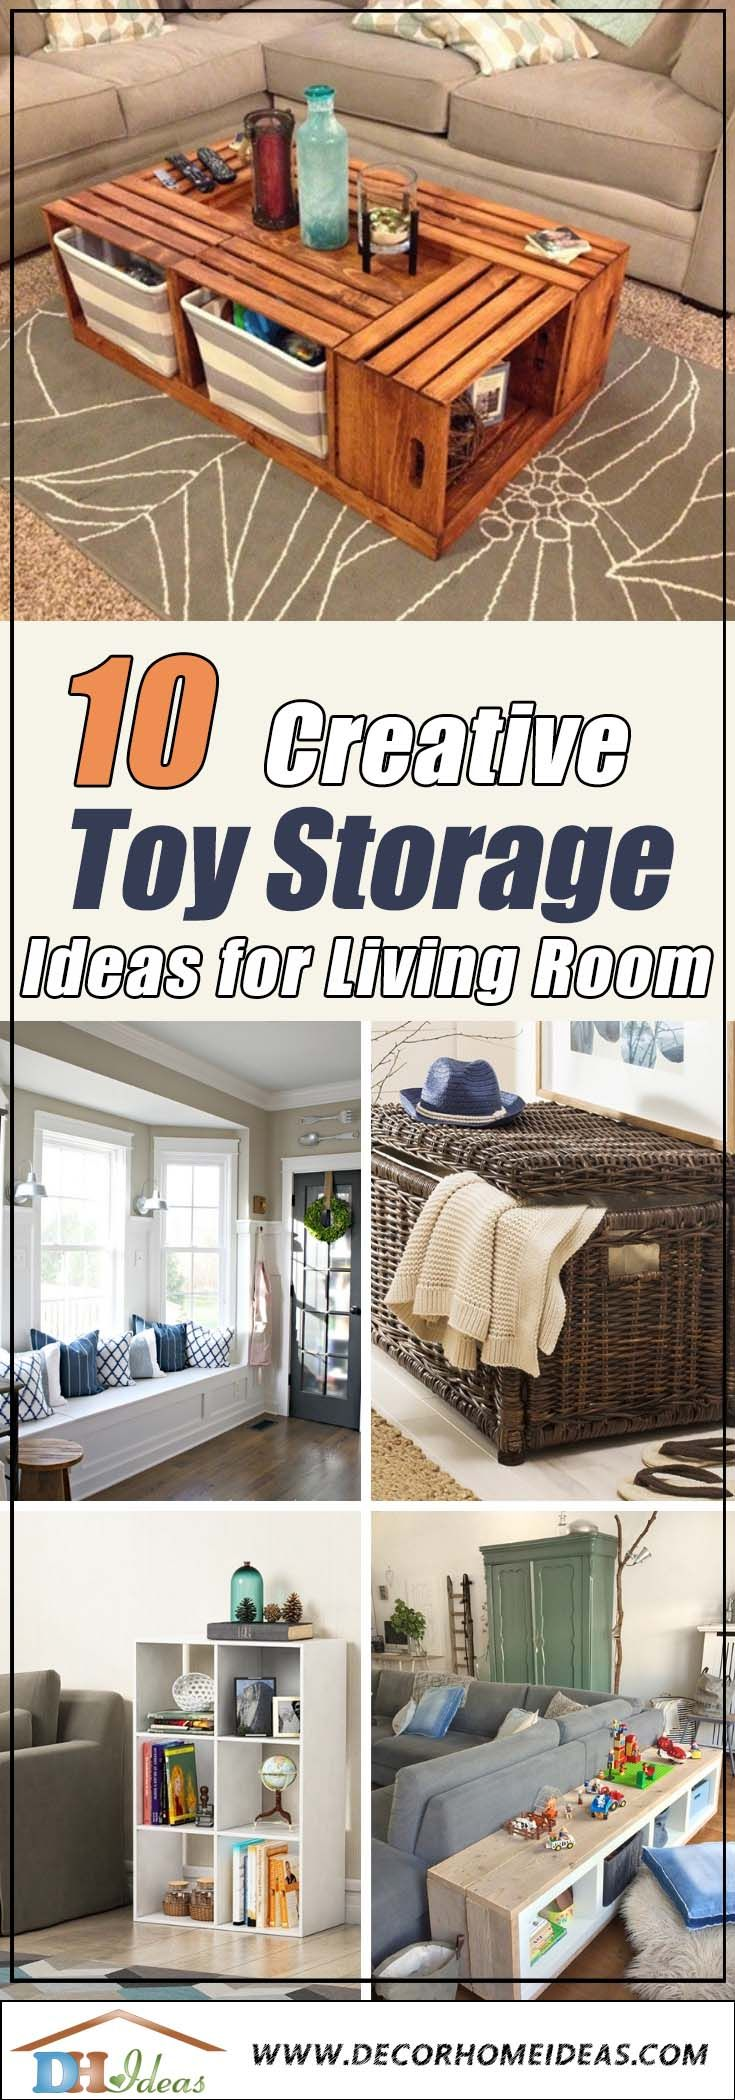 9 Best Toy Storage Ideas For Living Room In 2020 Living Room Toy Storage Creative Toy Storage Living Room Toy Storage Solutions #toy #basket #for #living #room